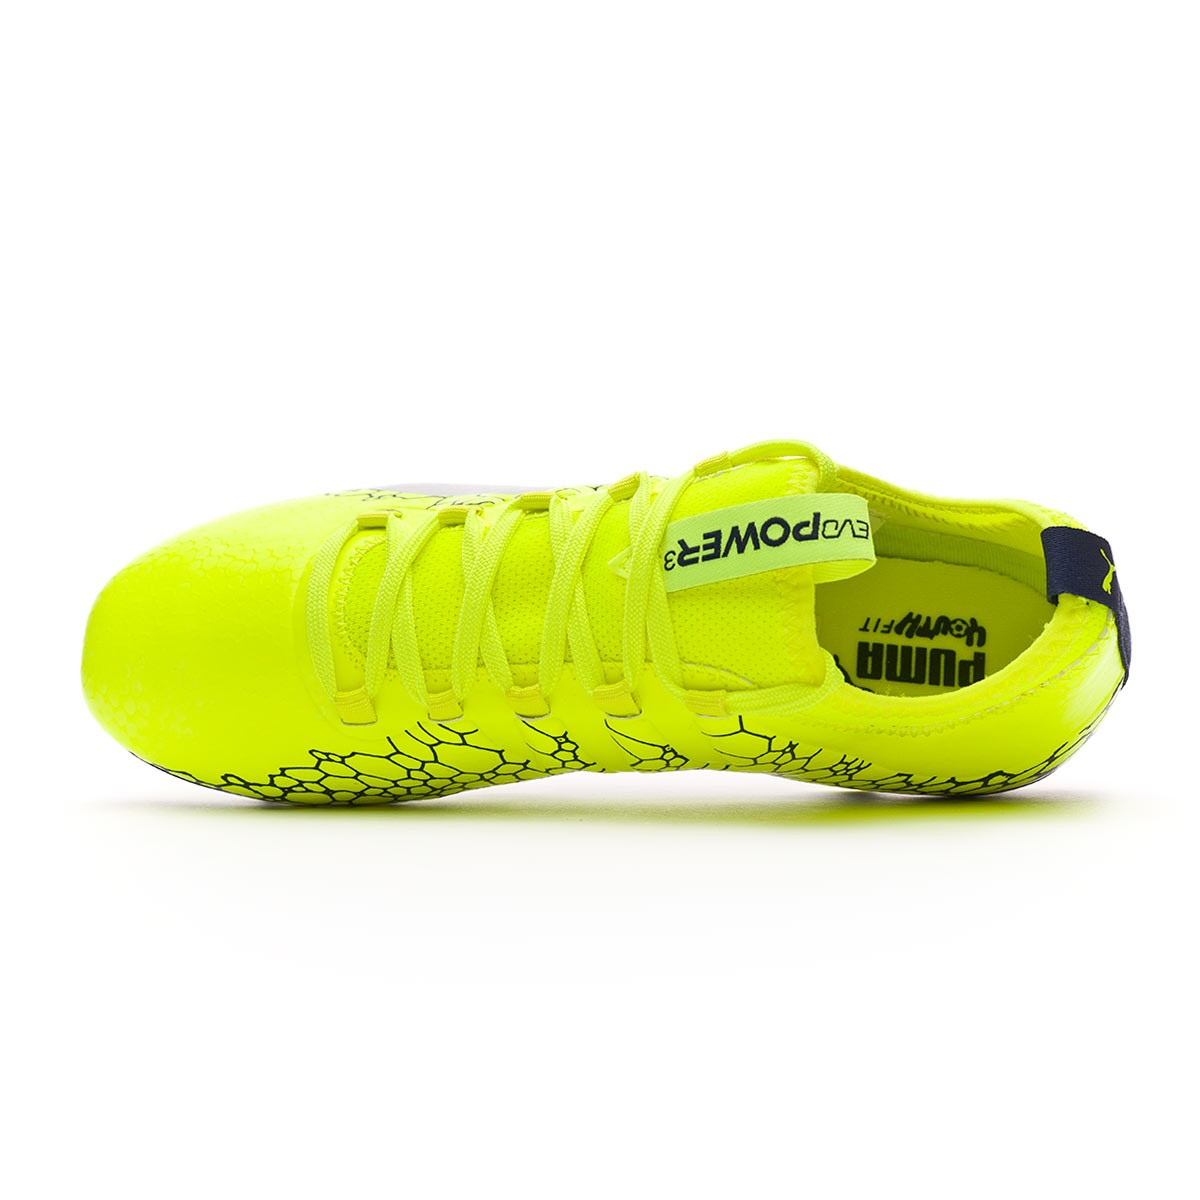 7d864a7db14a Football Boots Puma Kids evoPOWER Vigor 3 Graphic AG Safety  yellow-Silver-Blue depths - Tienda de fútbol Fútbol Emotion